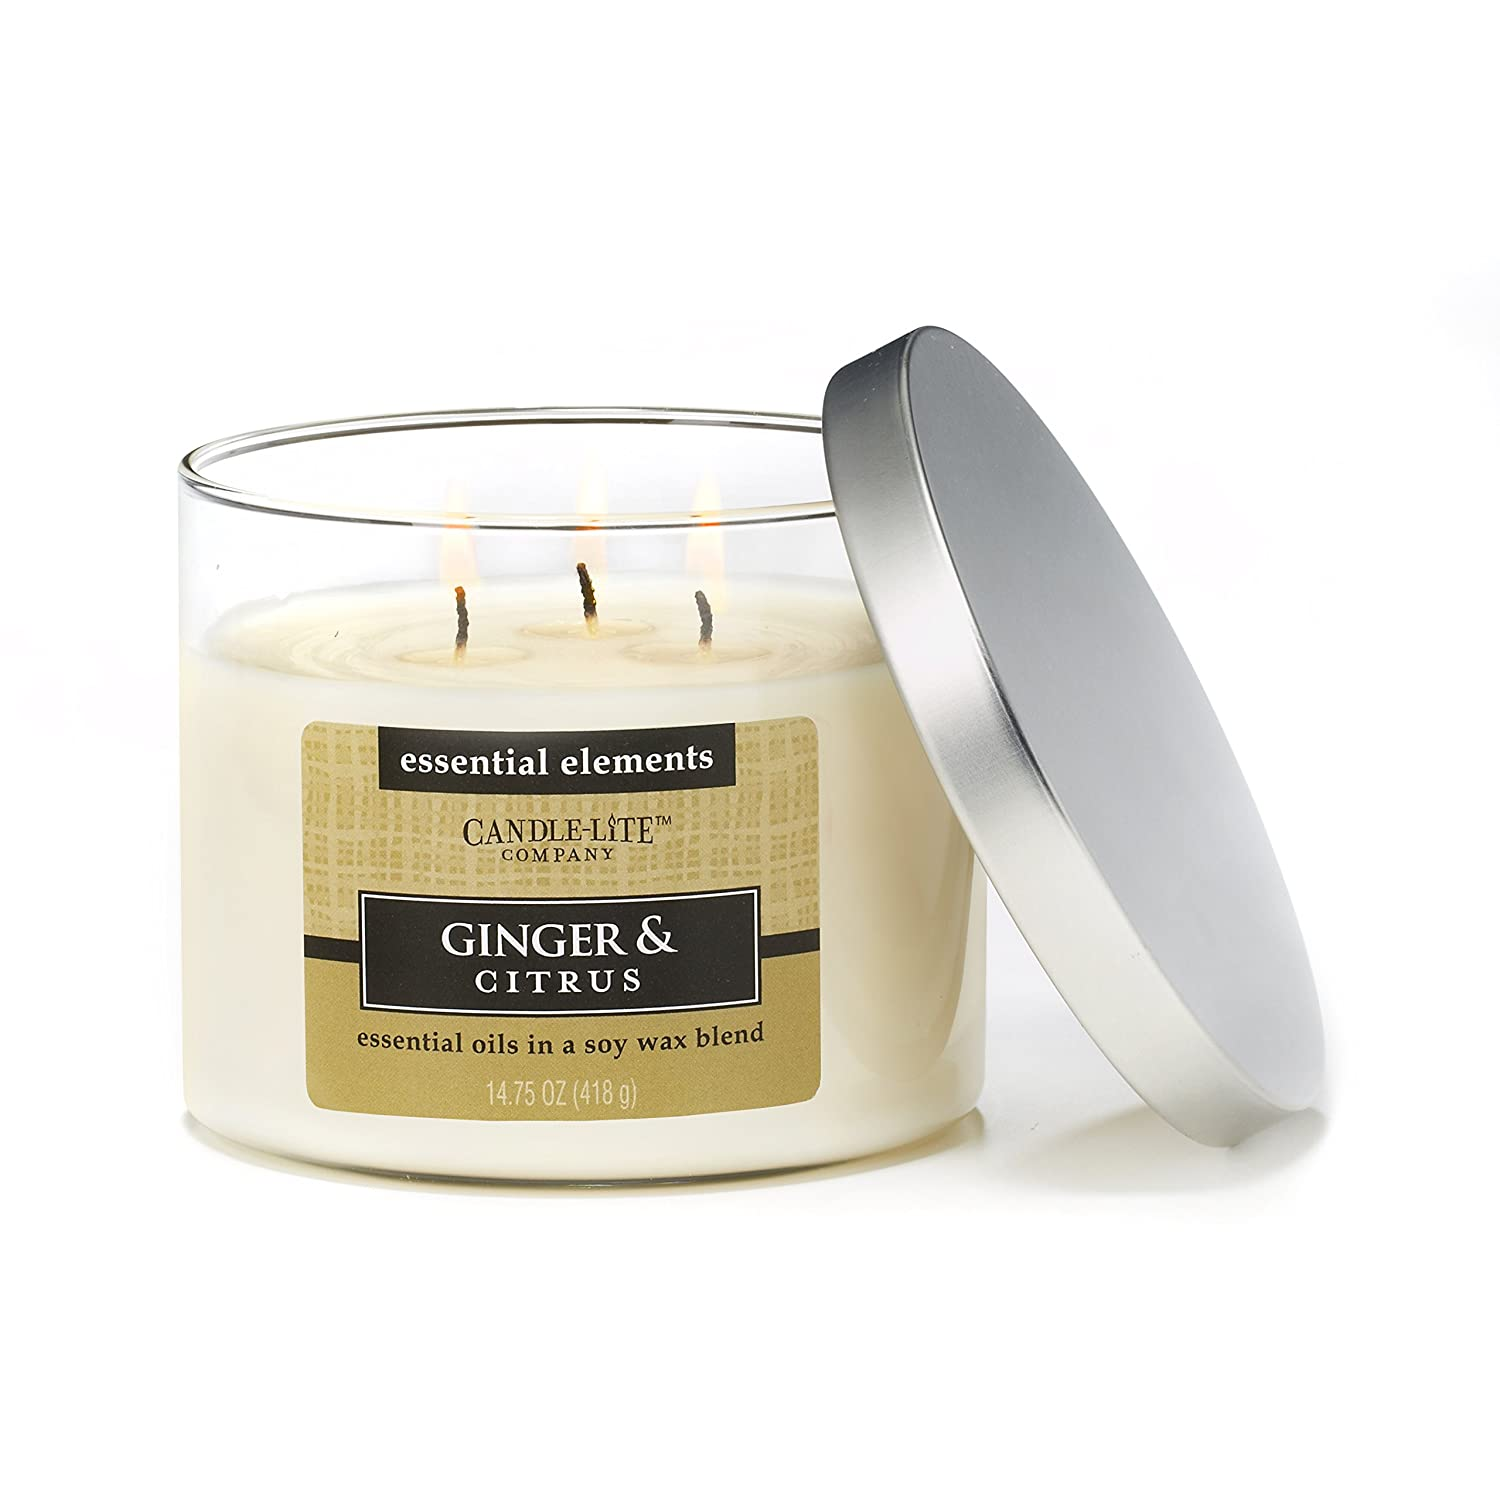 Candlelite Essential Elements 14-3/4-Ounce 3 Wick Candle with Soy Wax, Eucalyptus and Cucumber CanonInk 1542174